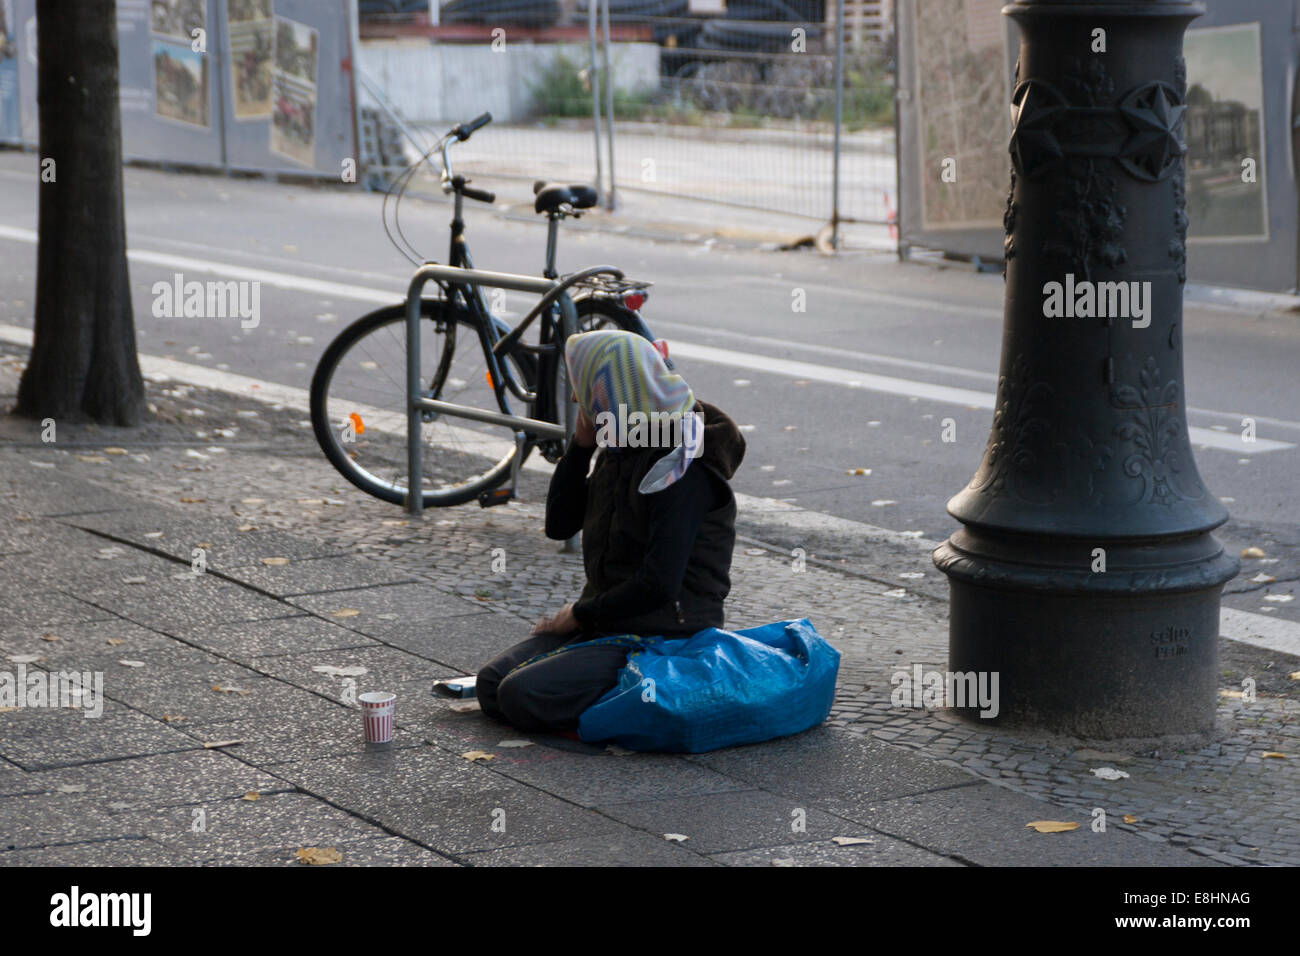 Female Beggar Berlin Germany - Stock Image